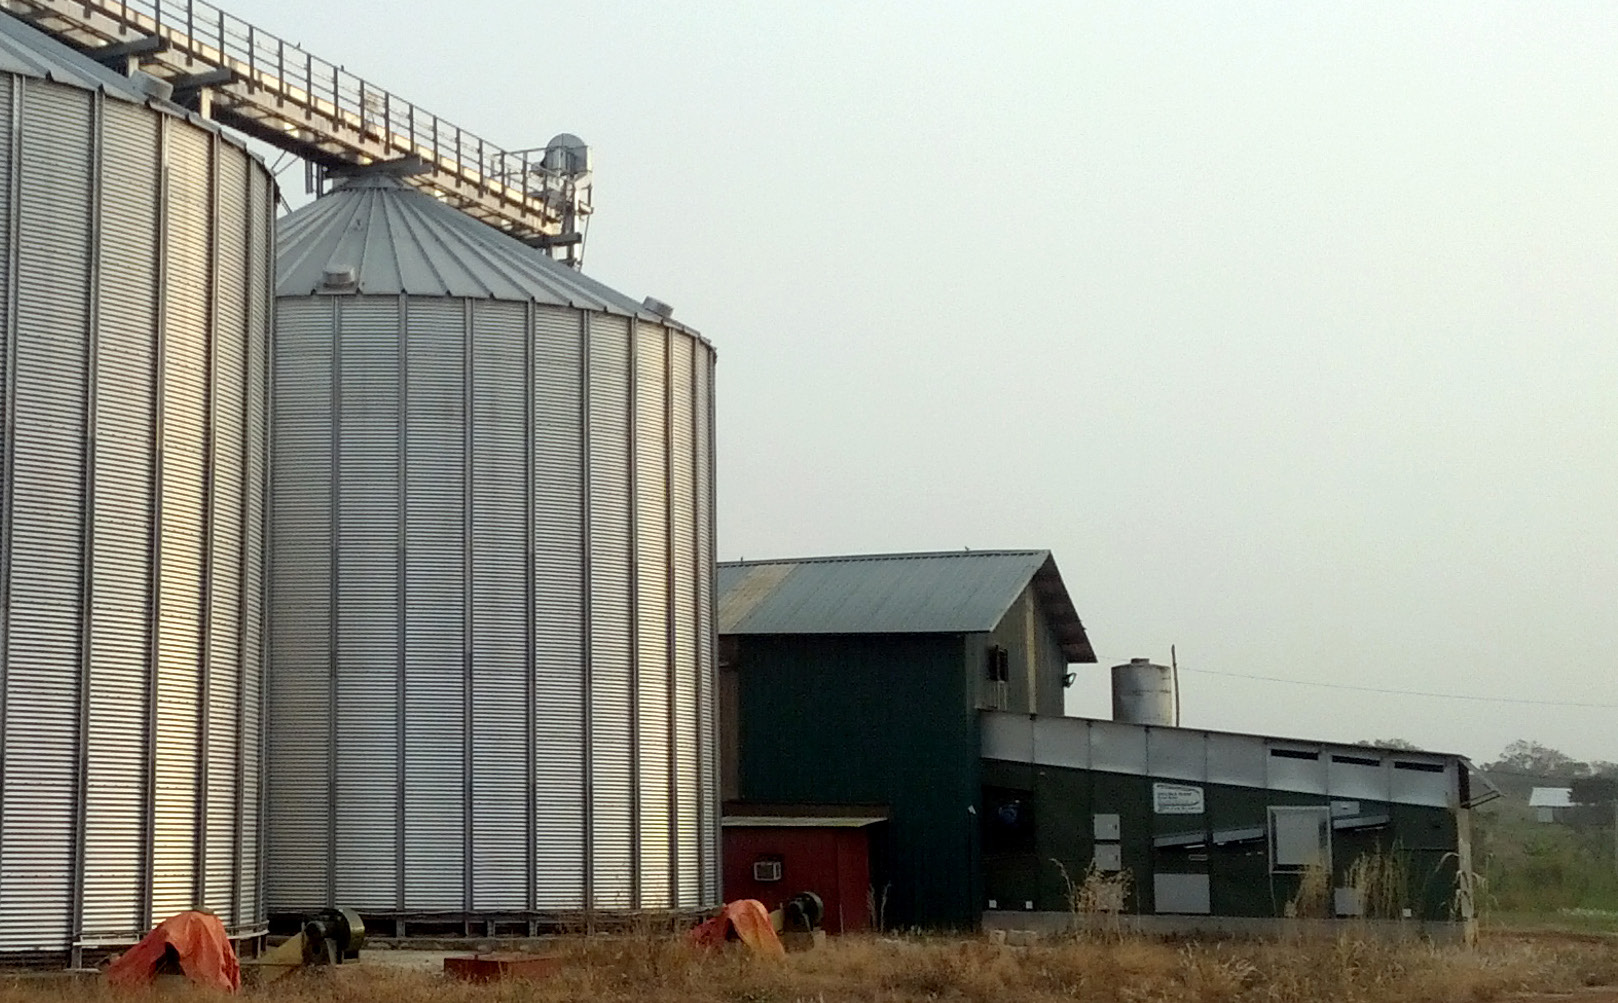 Alvan Blanch Grain Cleaning Drying and Bulk Storage Ilorin Nigeria Page 2 Image 0002